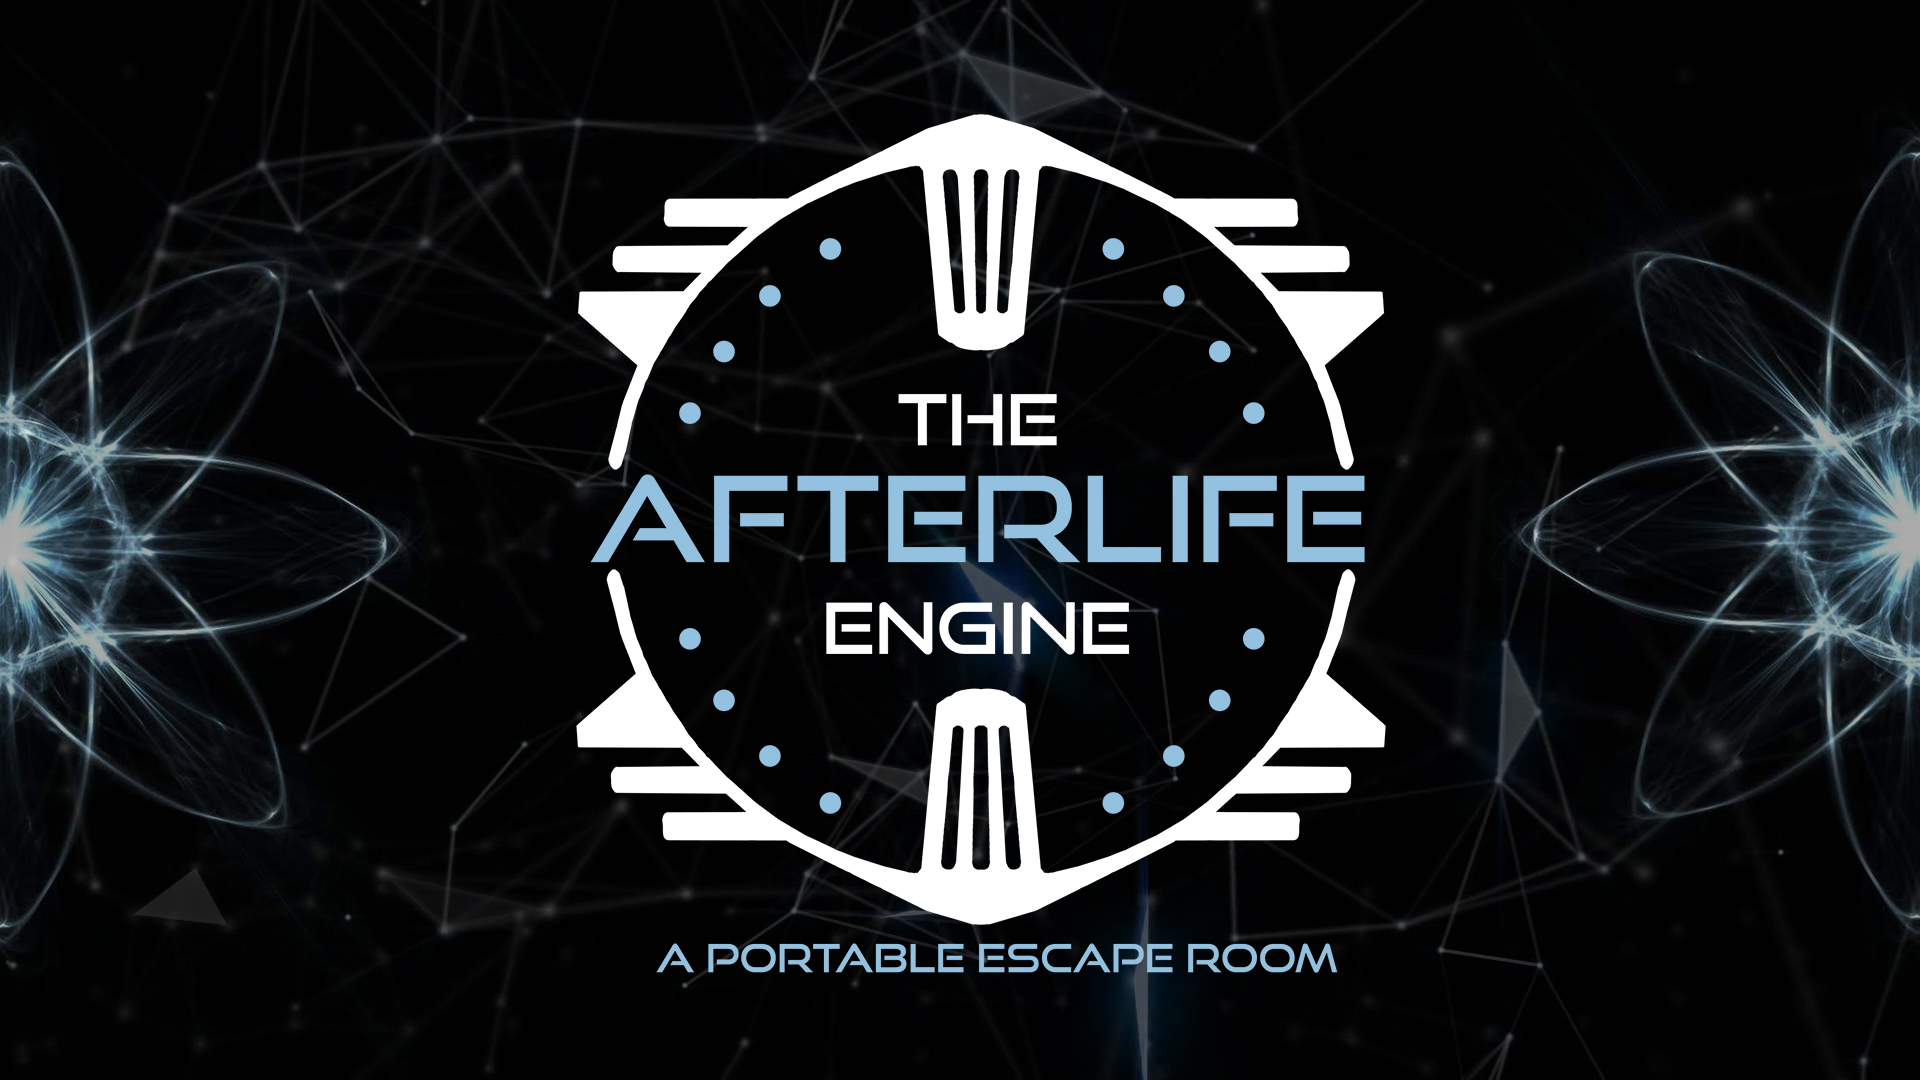 The Afterlife Engine